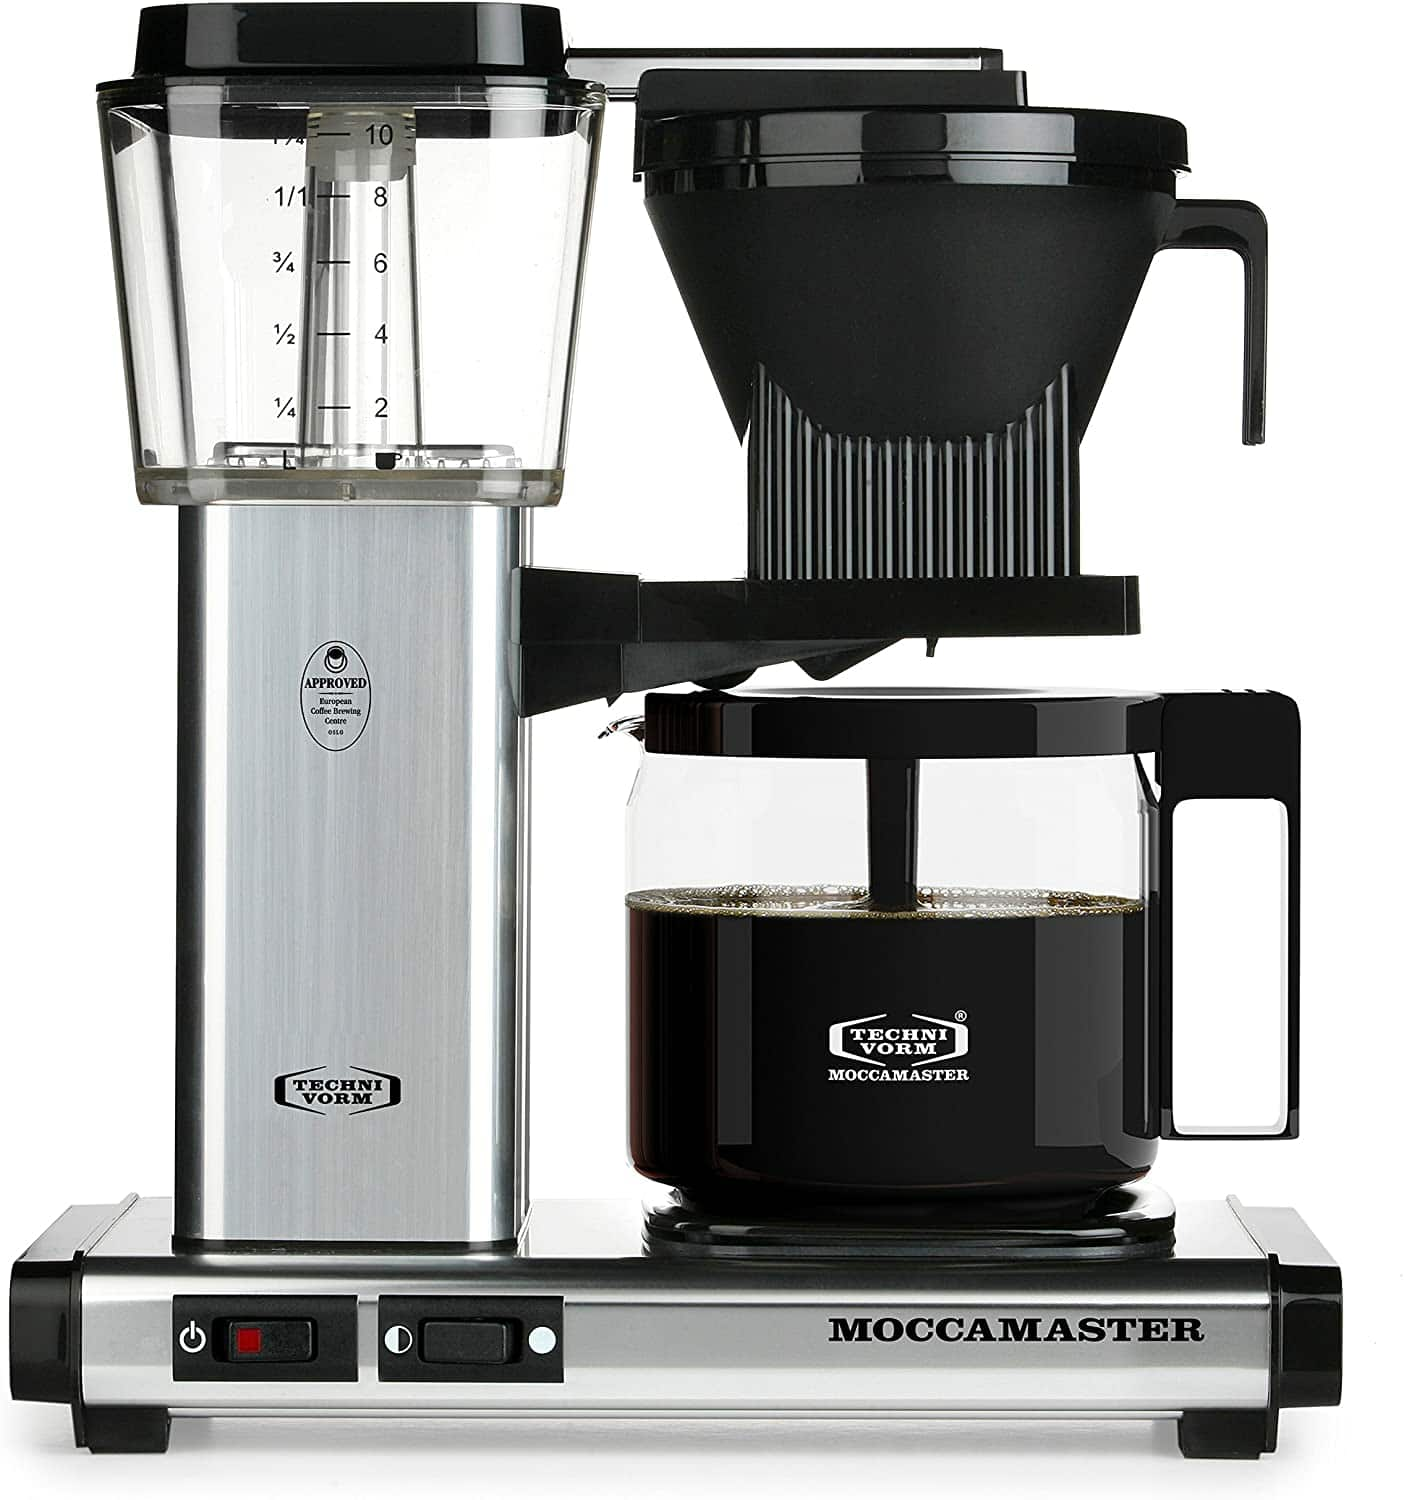 Technivorm Moccamaster coffee makers: KB: $239, KBG: $247, KBGT & CDGT: $255